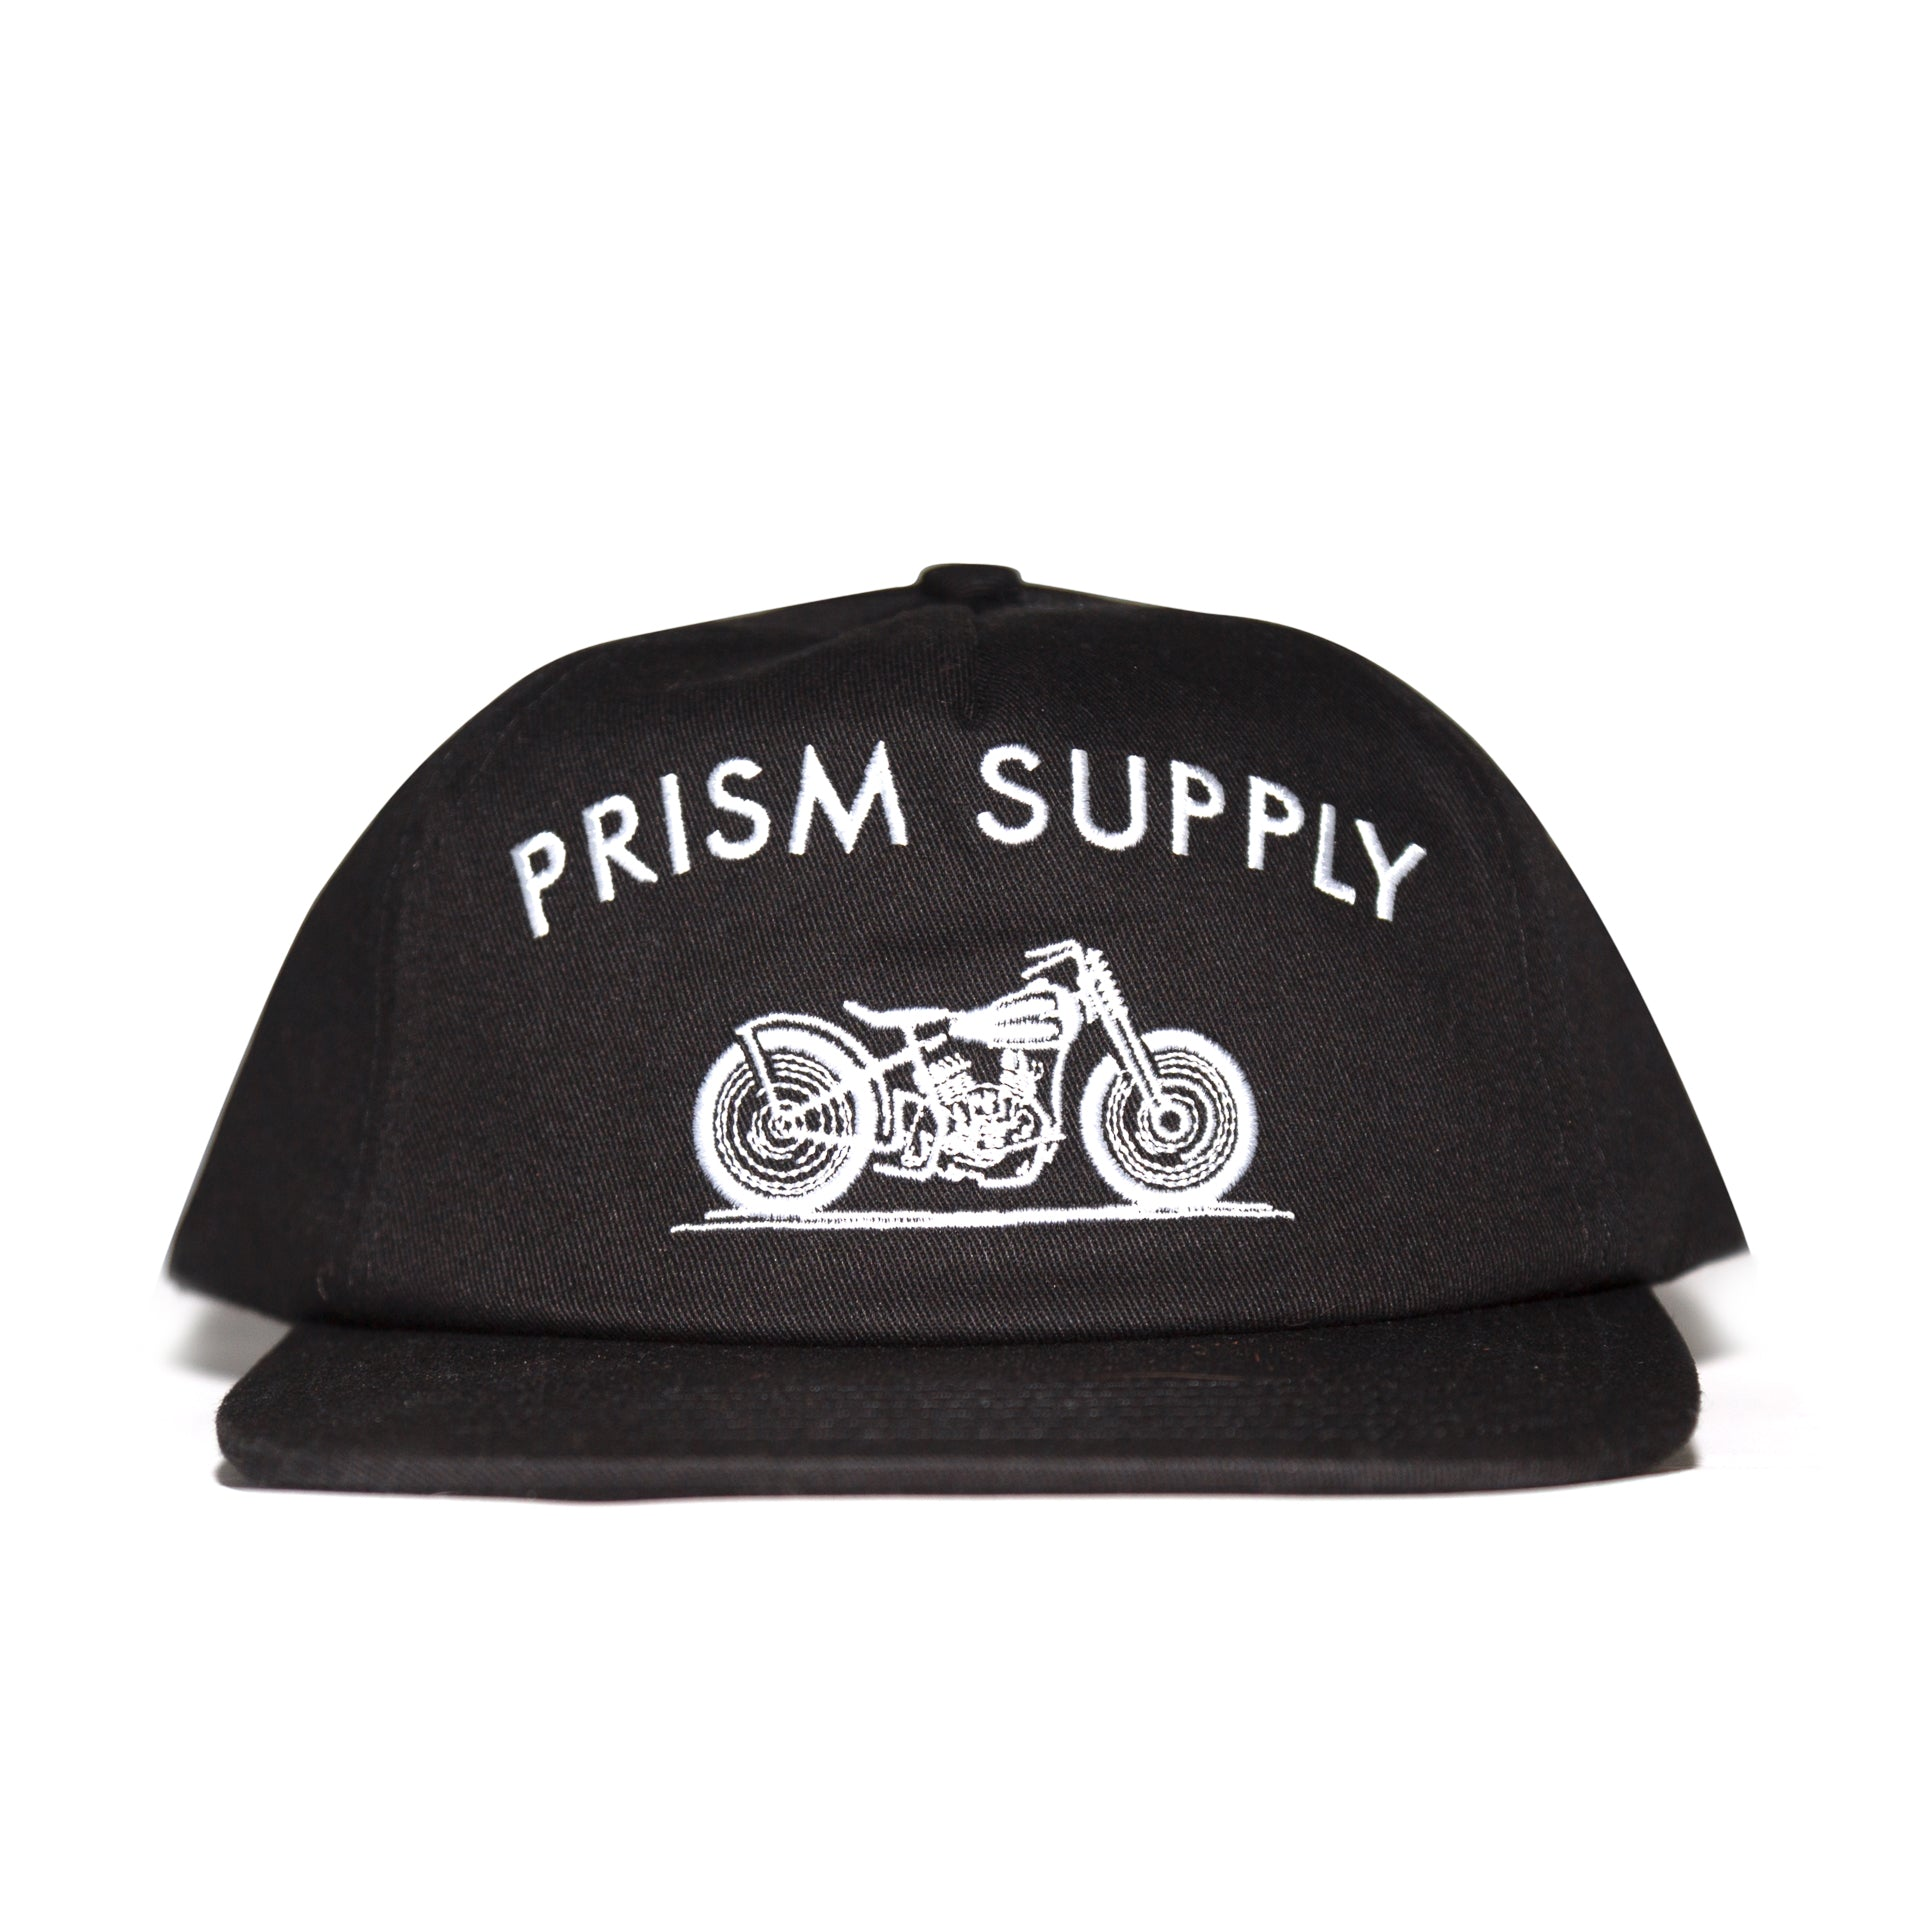 Racer Hat - Black - Apparel and Accessories - Prism Supply